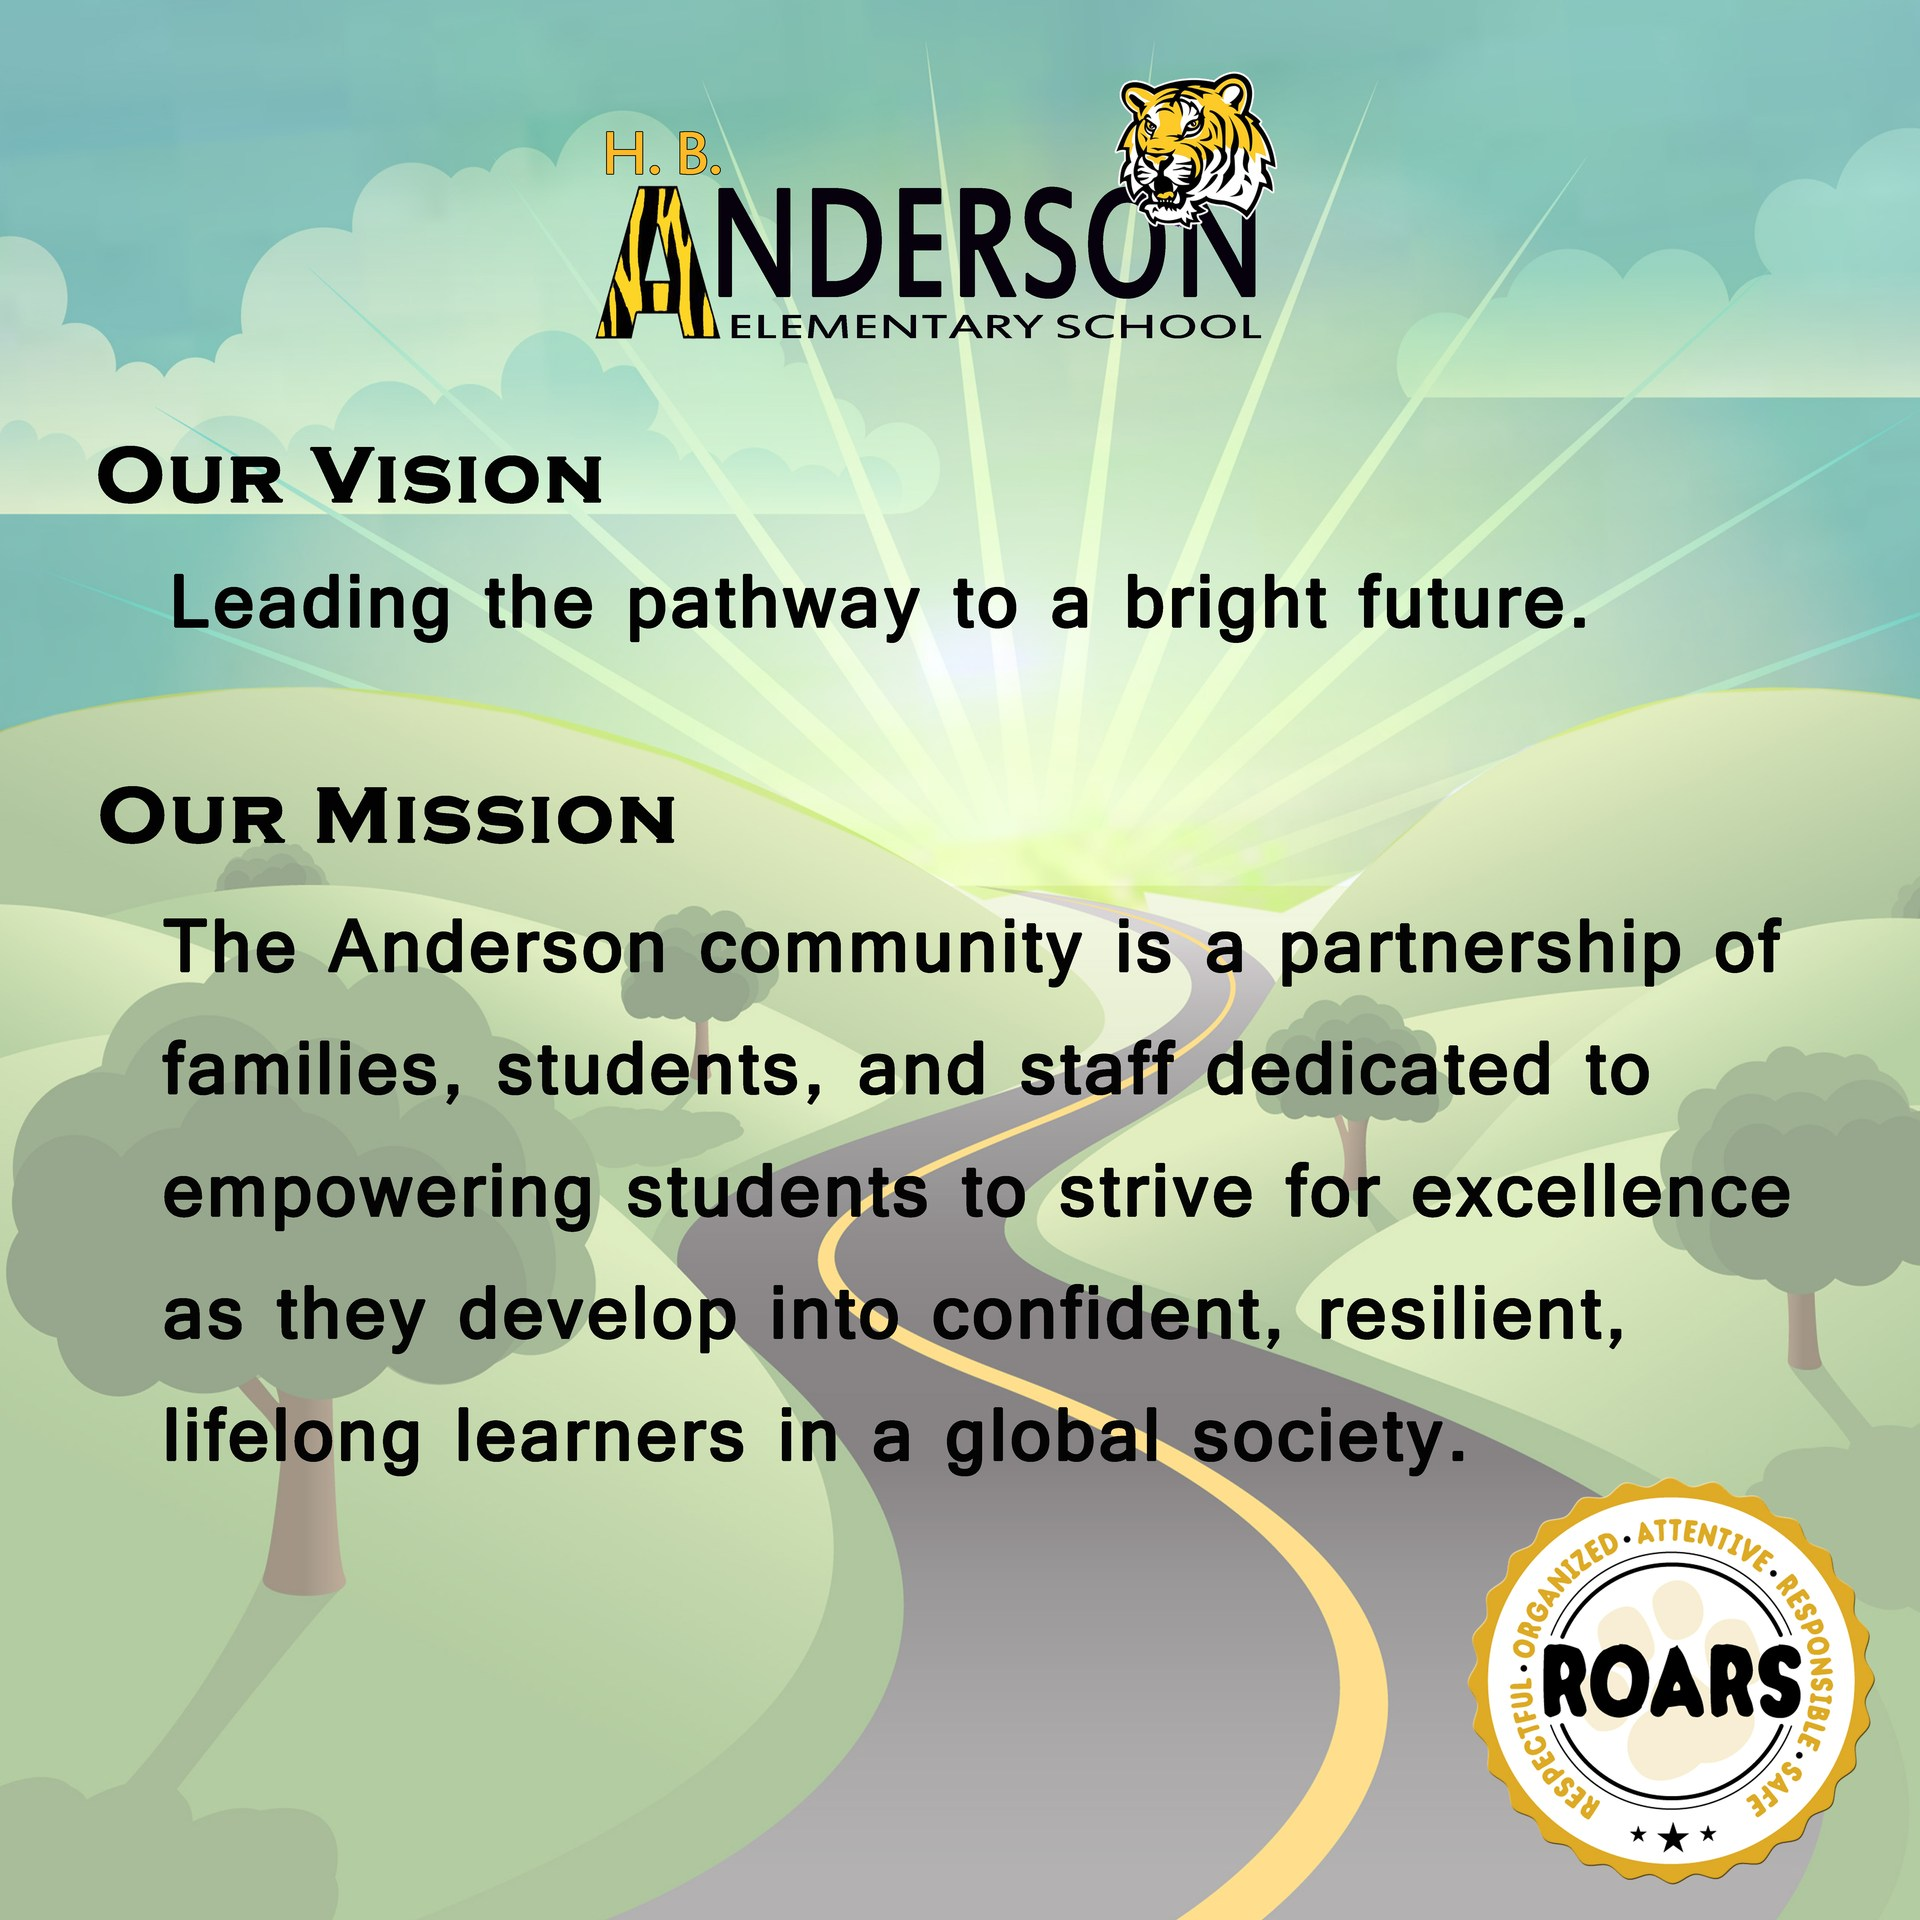 The Anderson Vision and Mission are decorated with a background of a road going towards a bright sun.